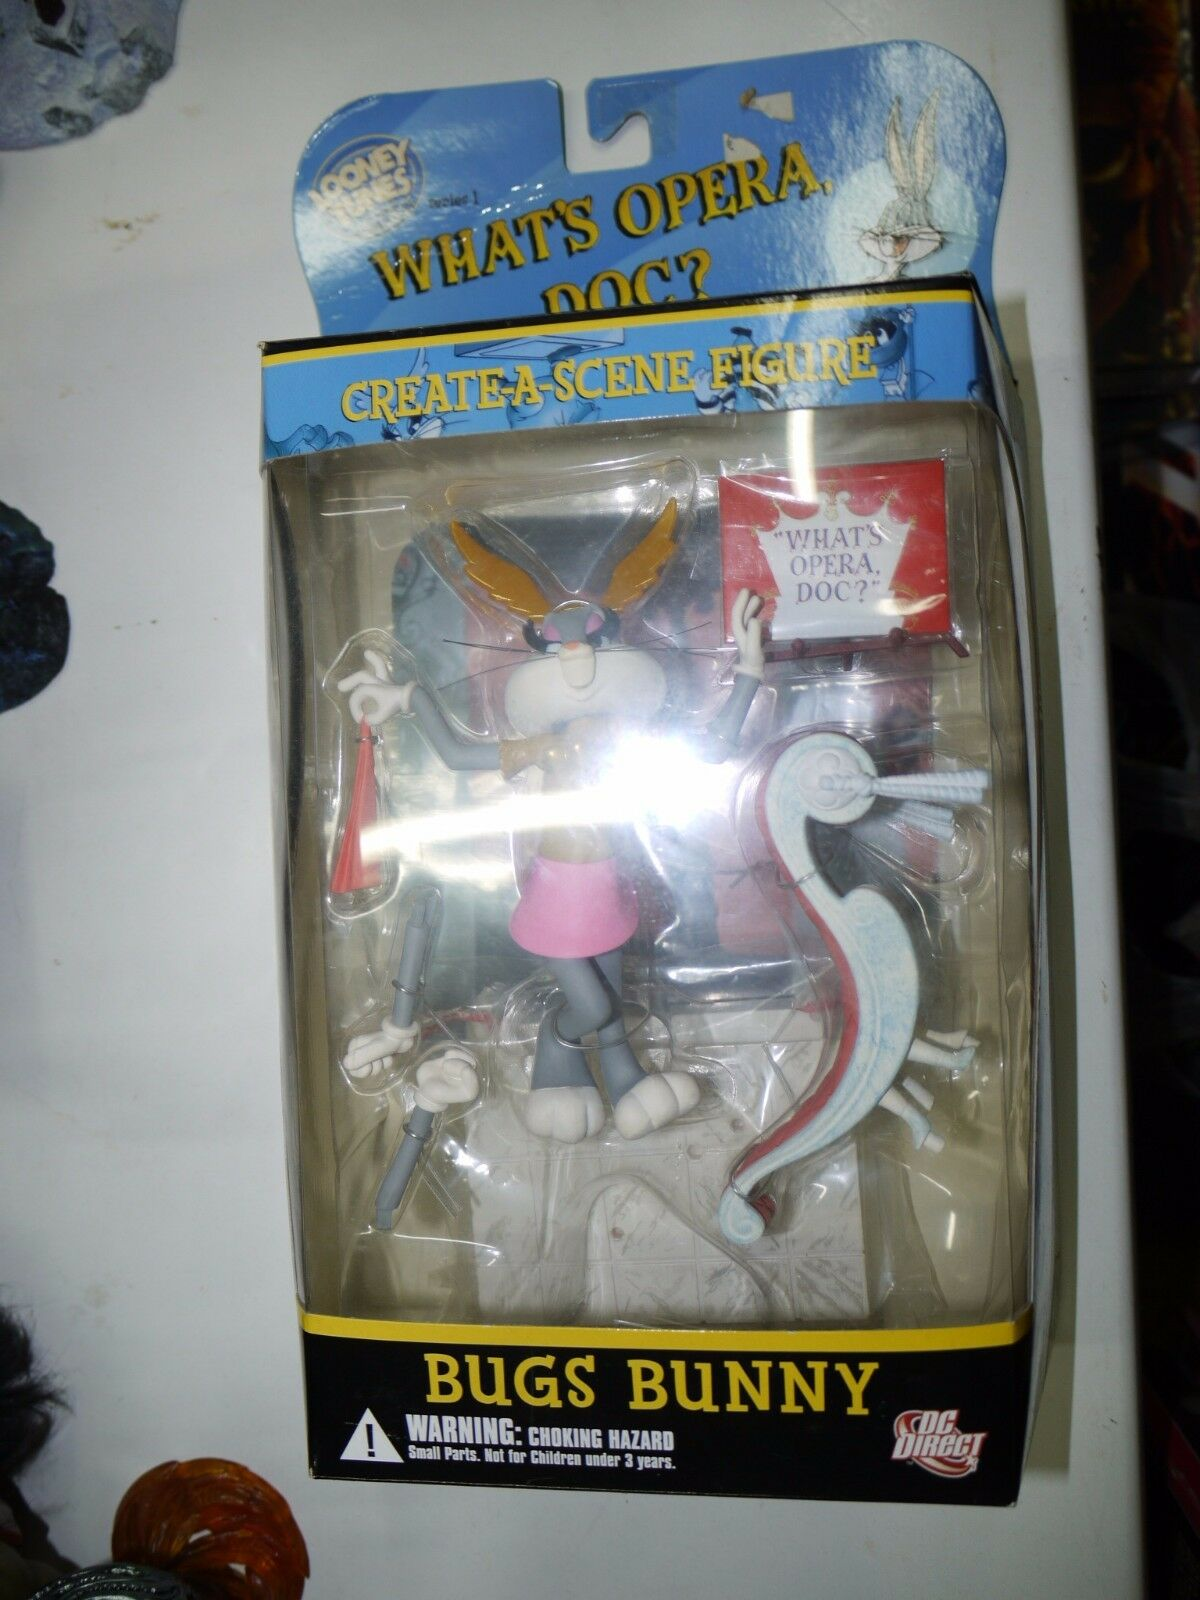 2006 DC Looney Tunes oroen collezione Bugs Bunny whats opera doc cifra MIB